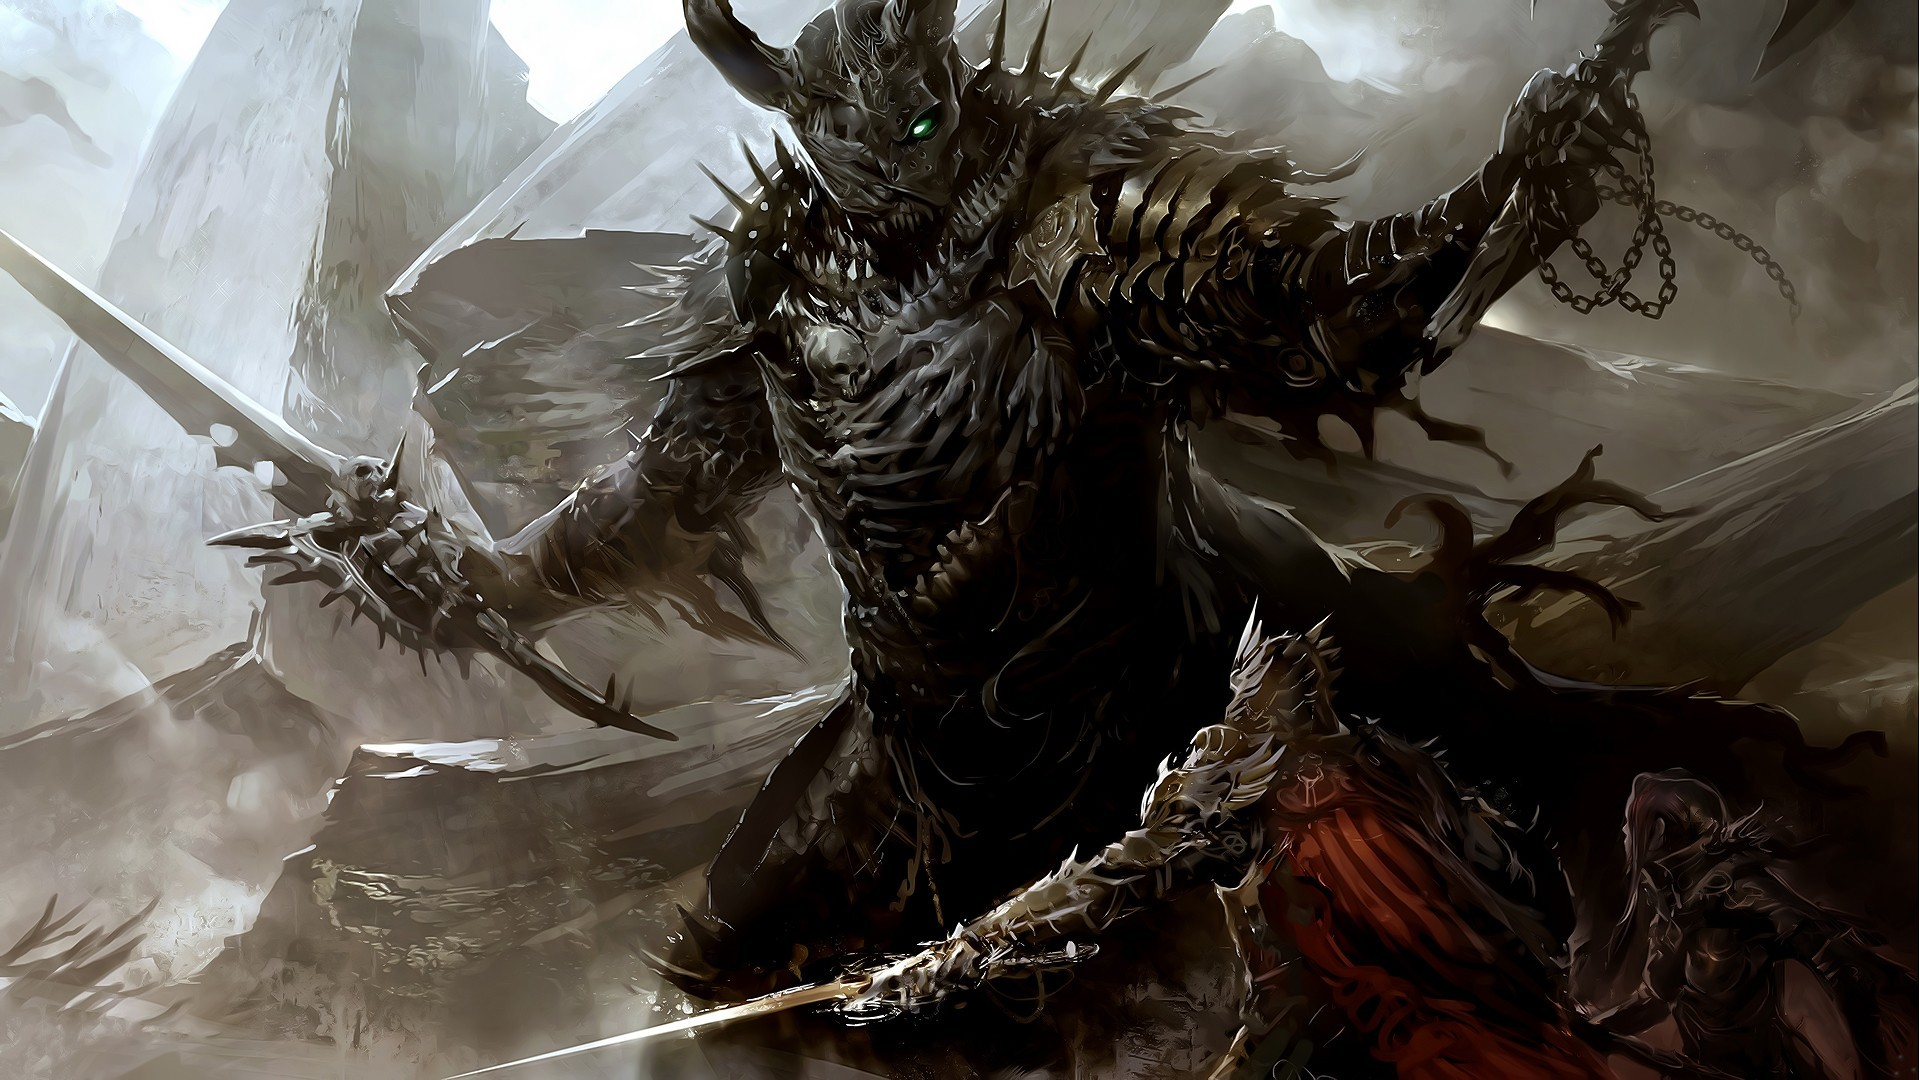 Epic Skyrim Wallpapers 69 Images